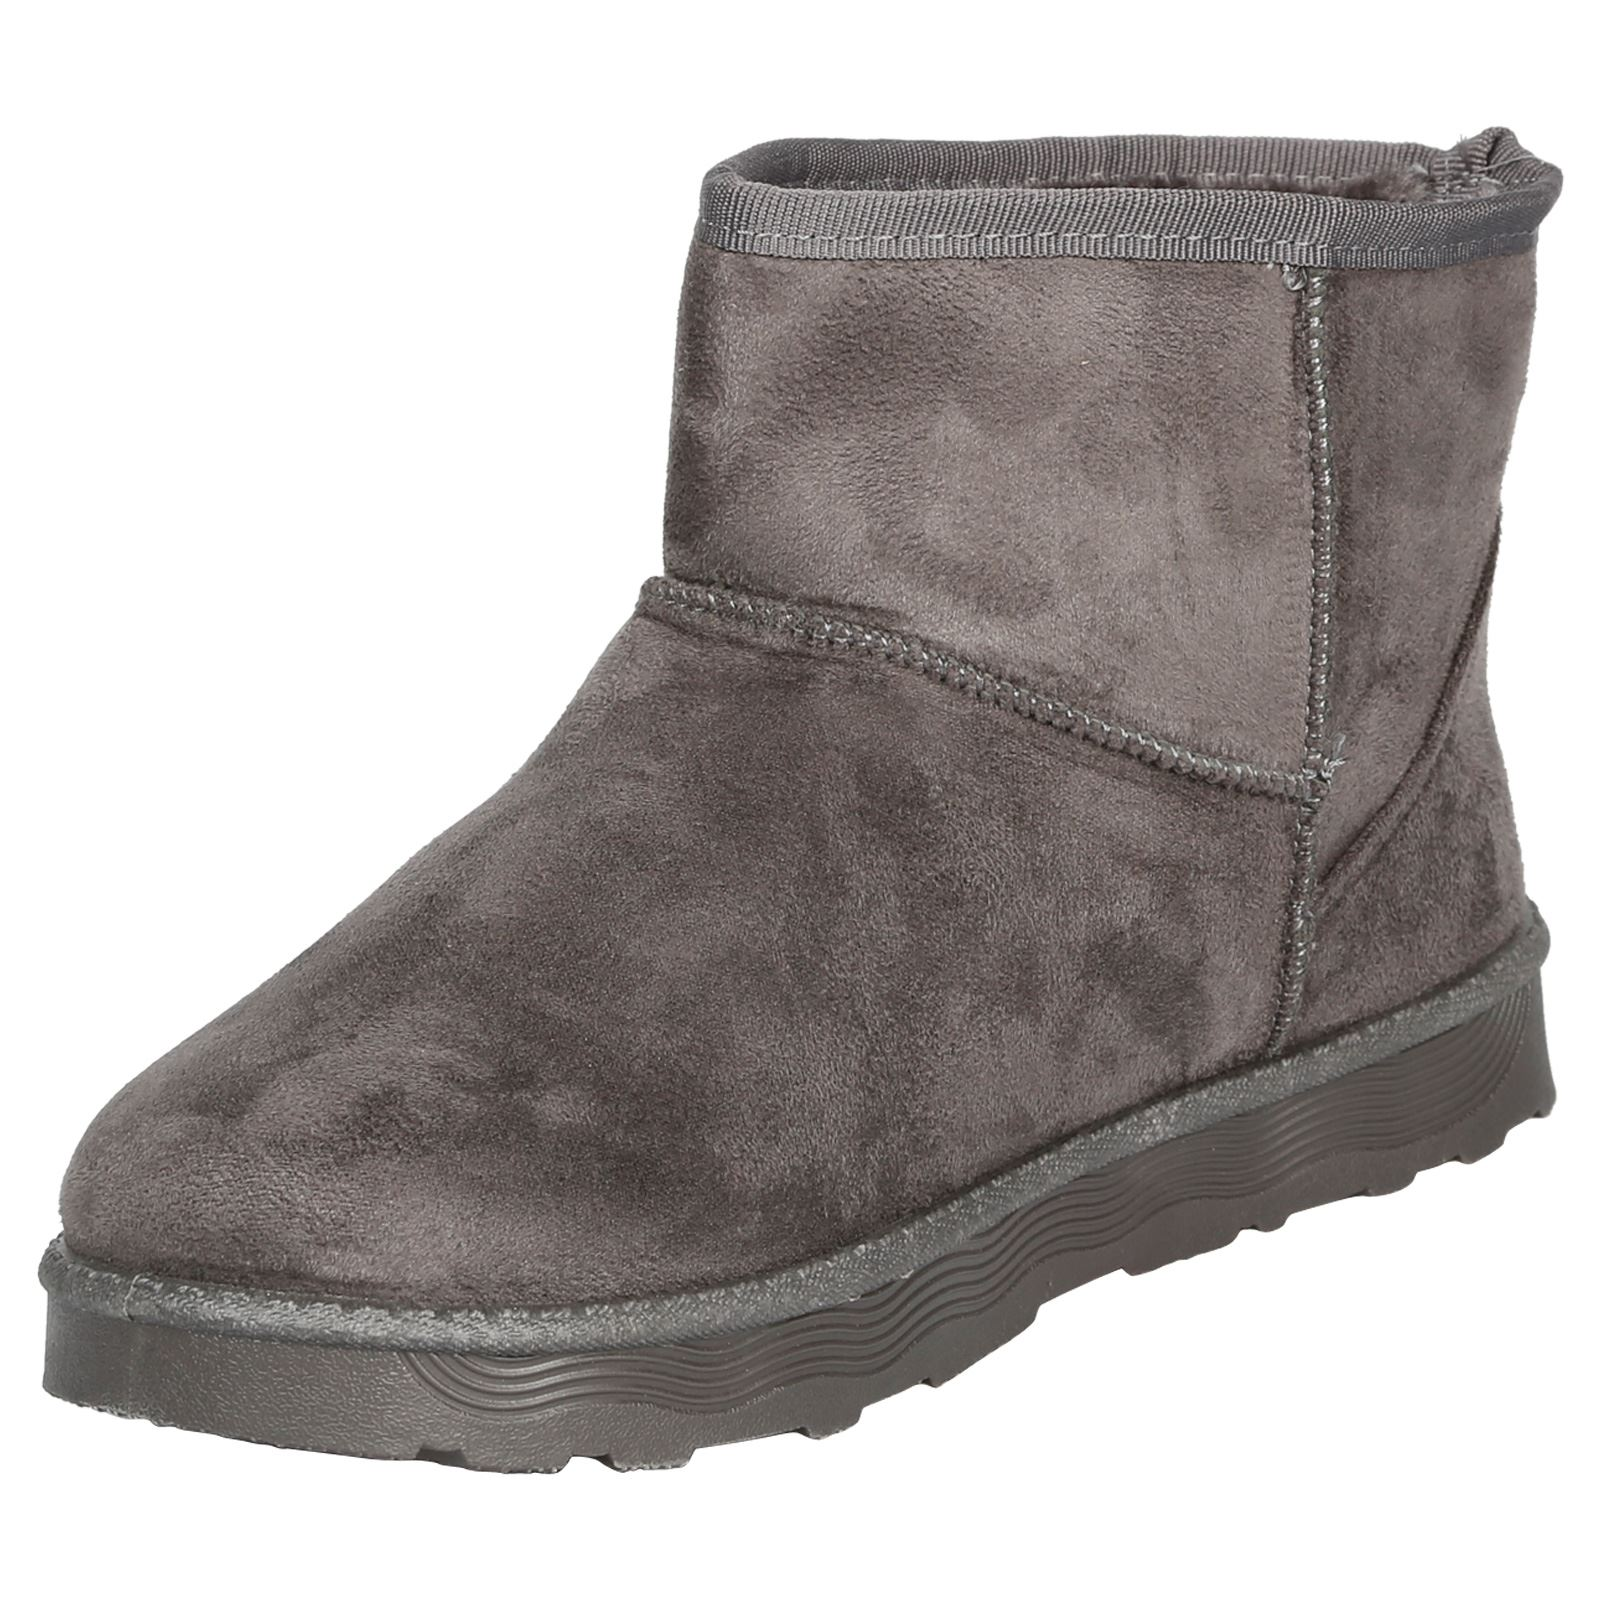 Naomi-Womens-Platfrom-Flat-Fur-Lined-Pull-On-Snug-Snow-Boots-Casual-Ladies-Size thumbnail 12